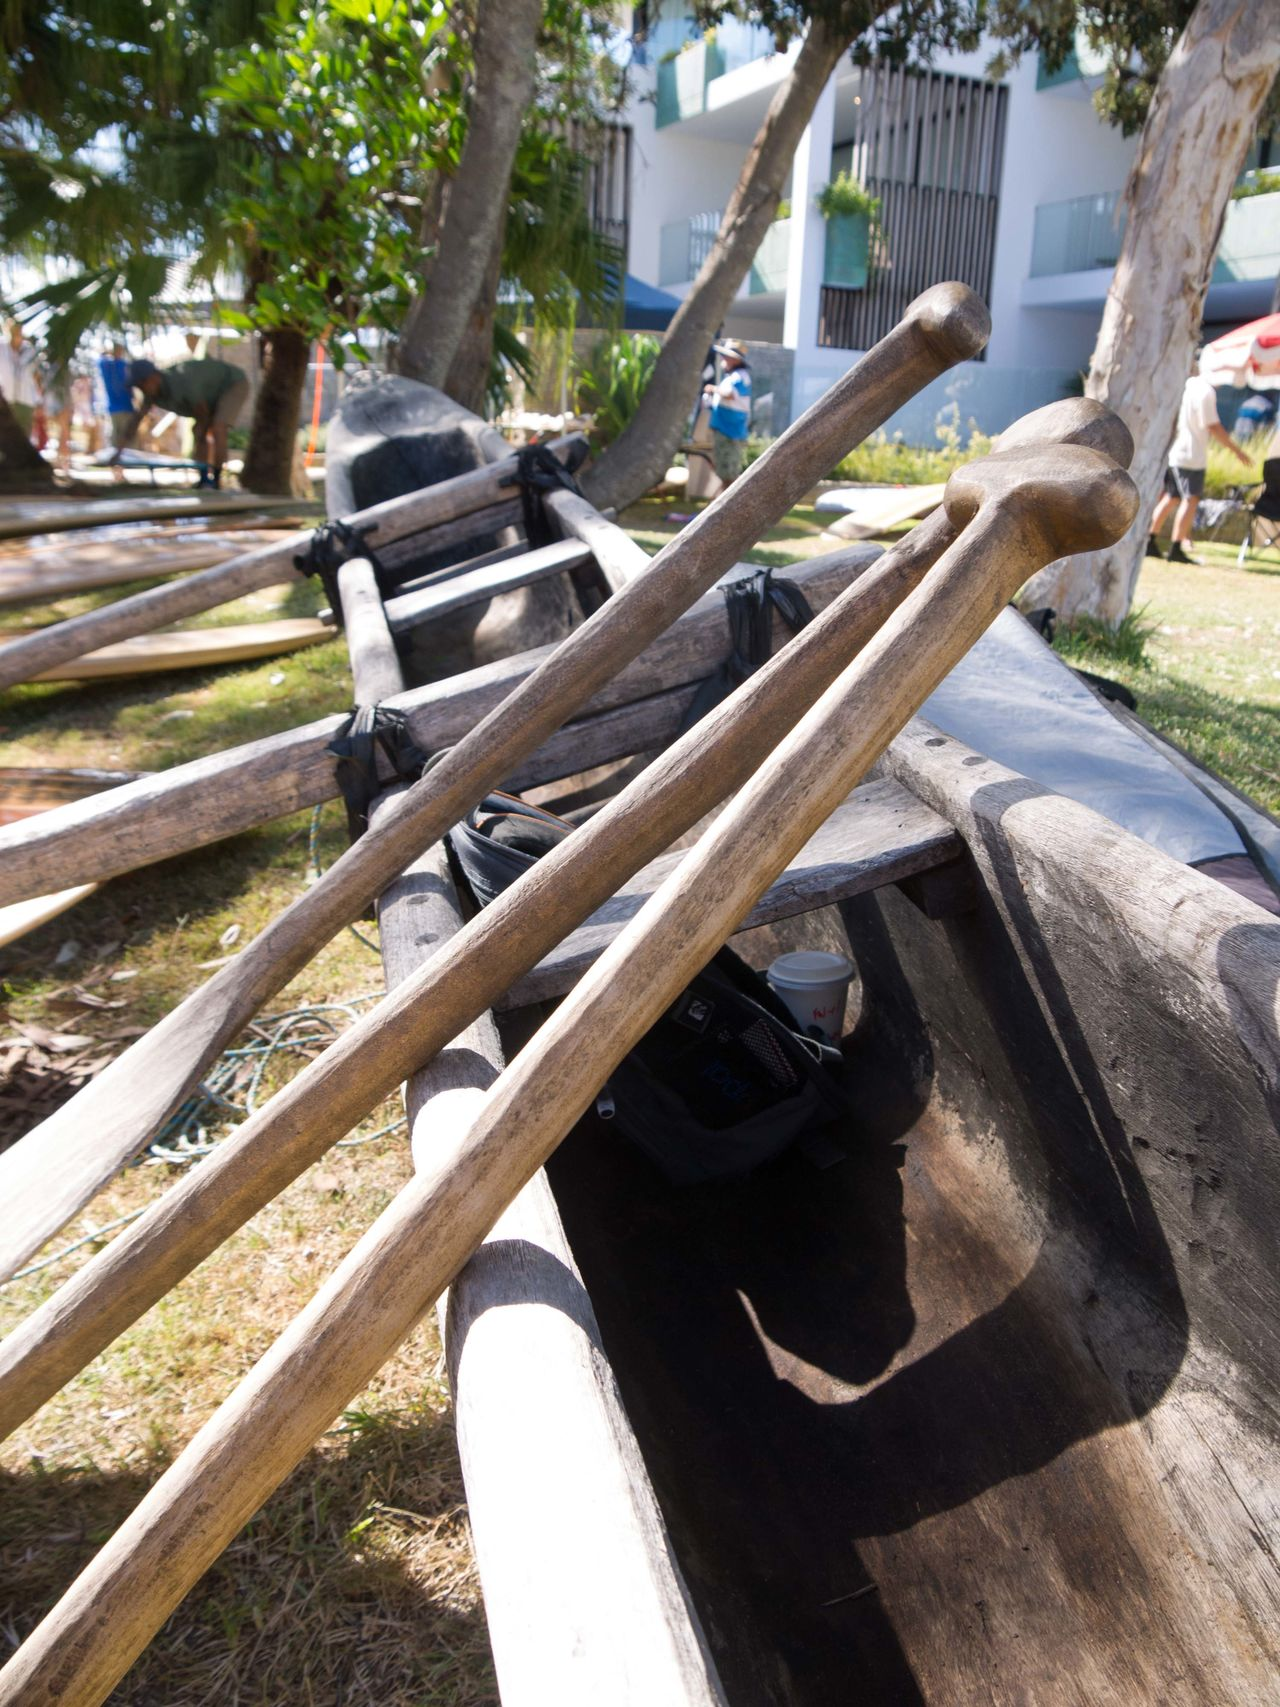 Close-up Day Longboat No People Outdoors Paddles Tree Wood - Material Wooden